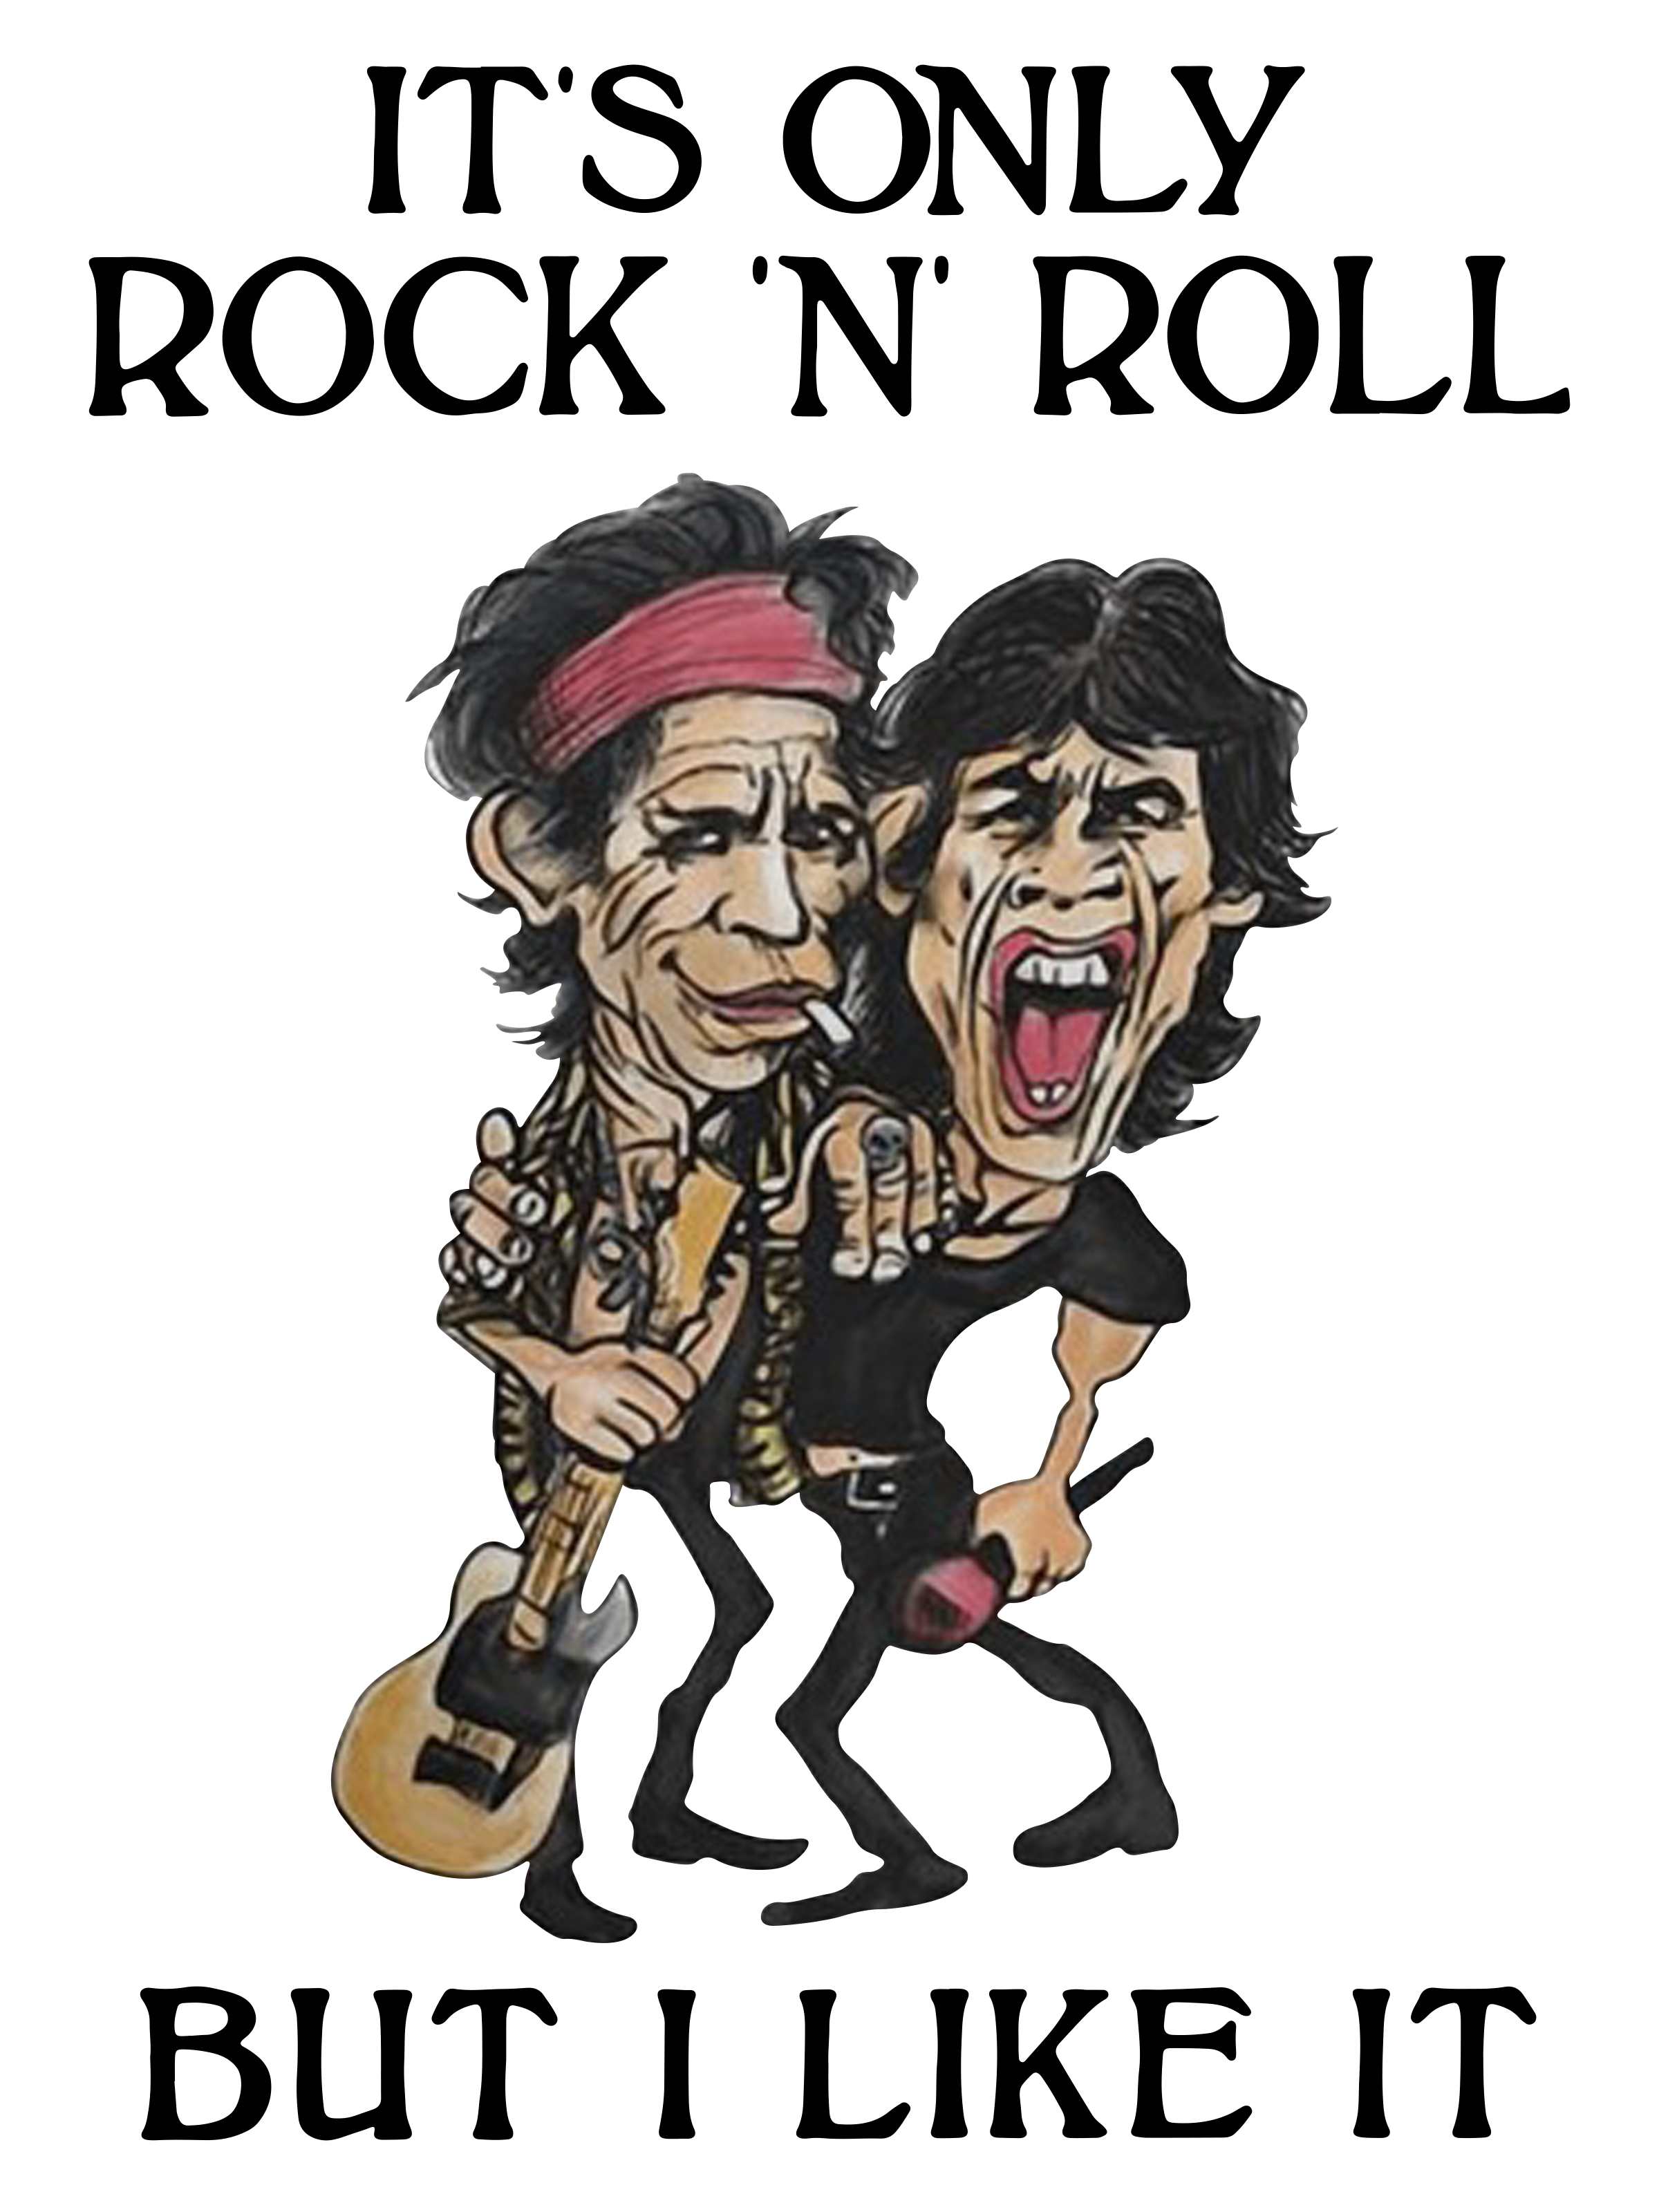 cool rolling stones it s only rock and roll but i like it shirt. Black Bedroom Furniture Sets. Home Design Ideas